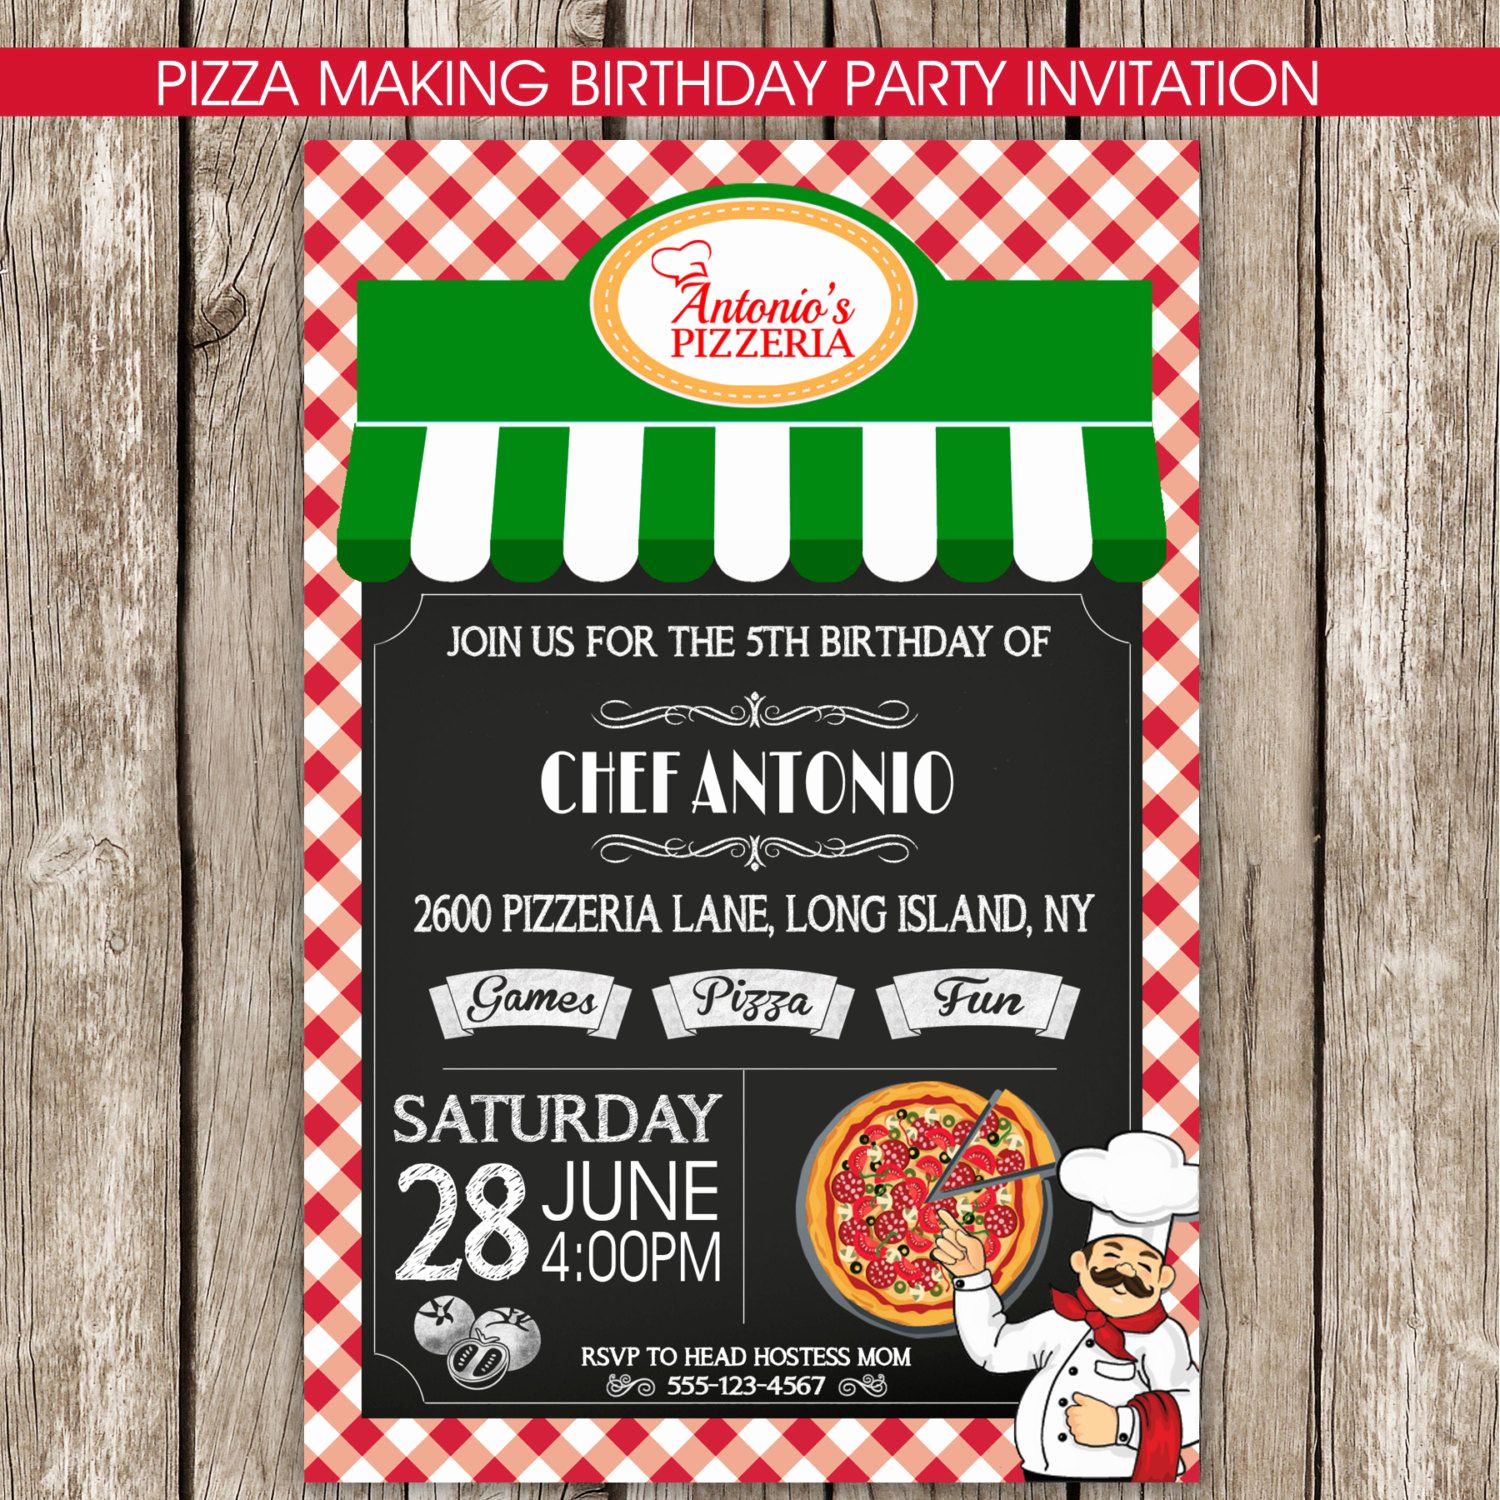 Pizza Party Invitation Wording Awesome Pizza Party Invitation Pizza Making Birthday Party Diy